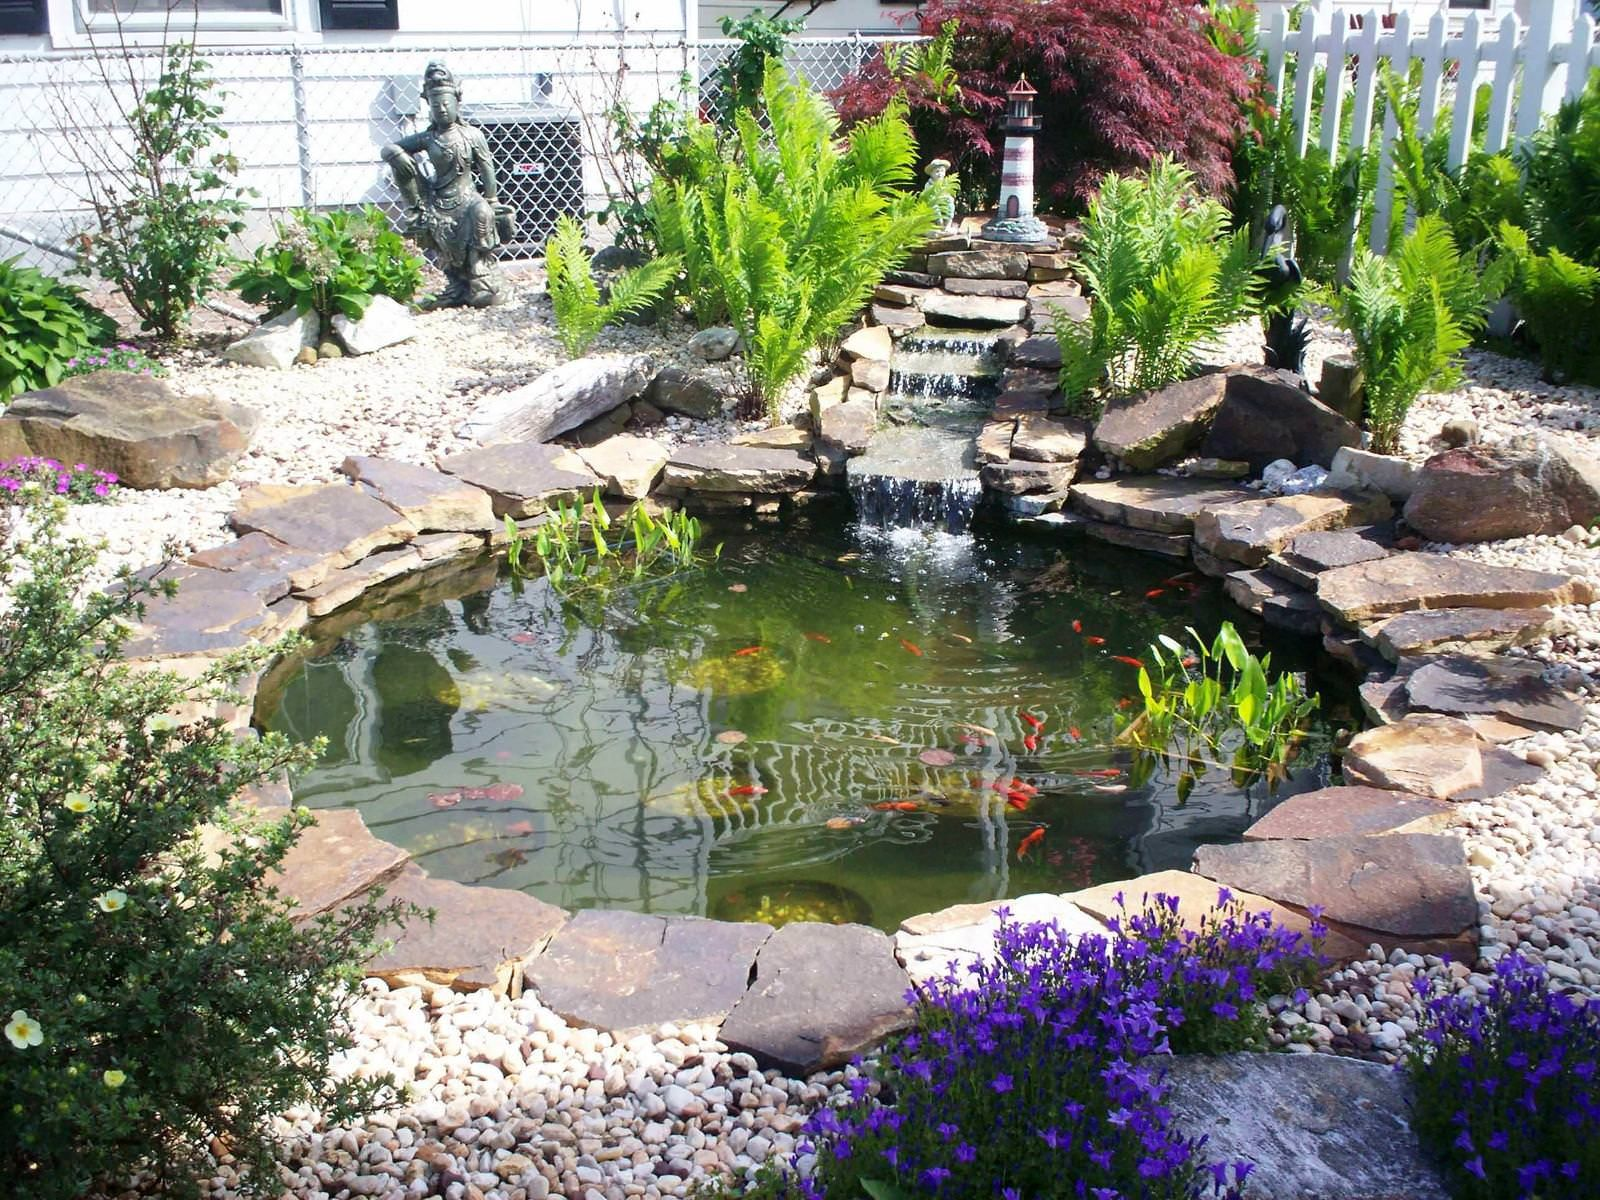 Small garden or backyard aquarium ideas practic ideas for Small garden pond design ideas